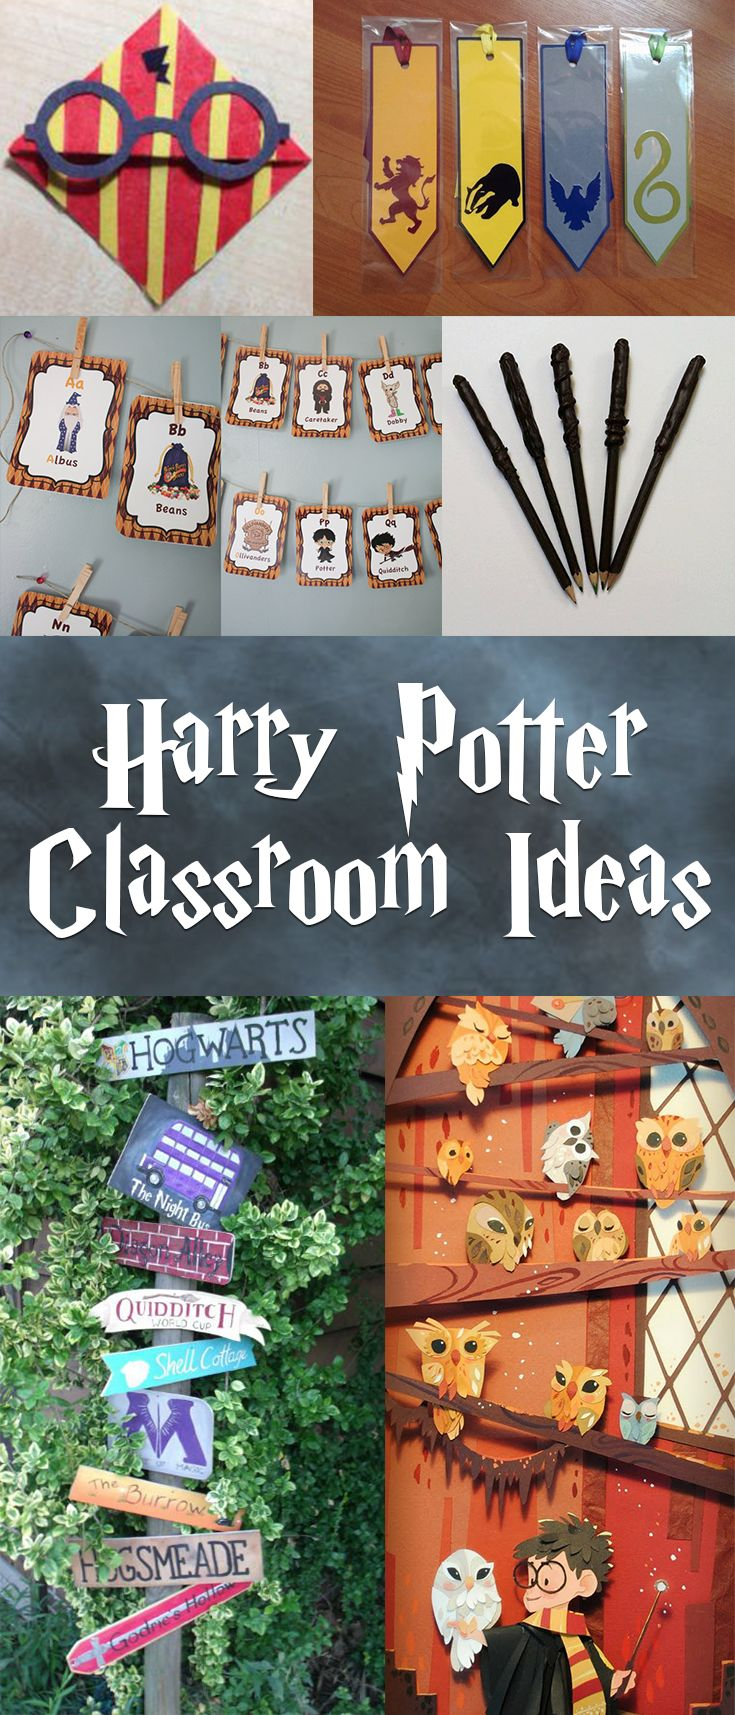 here are 11 harry potter themed classroom ideas that will sirius ly make your students feel as if theyre attending hogwarts - Classroom Design Ideas